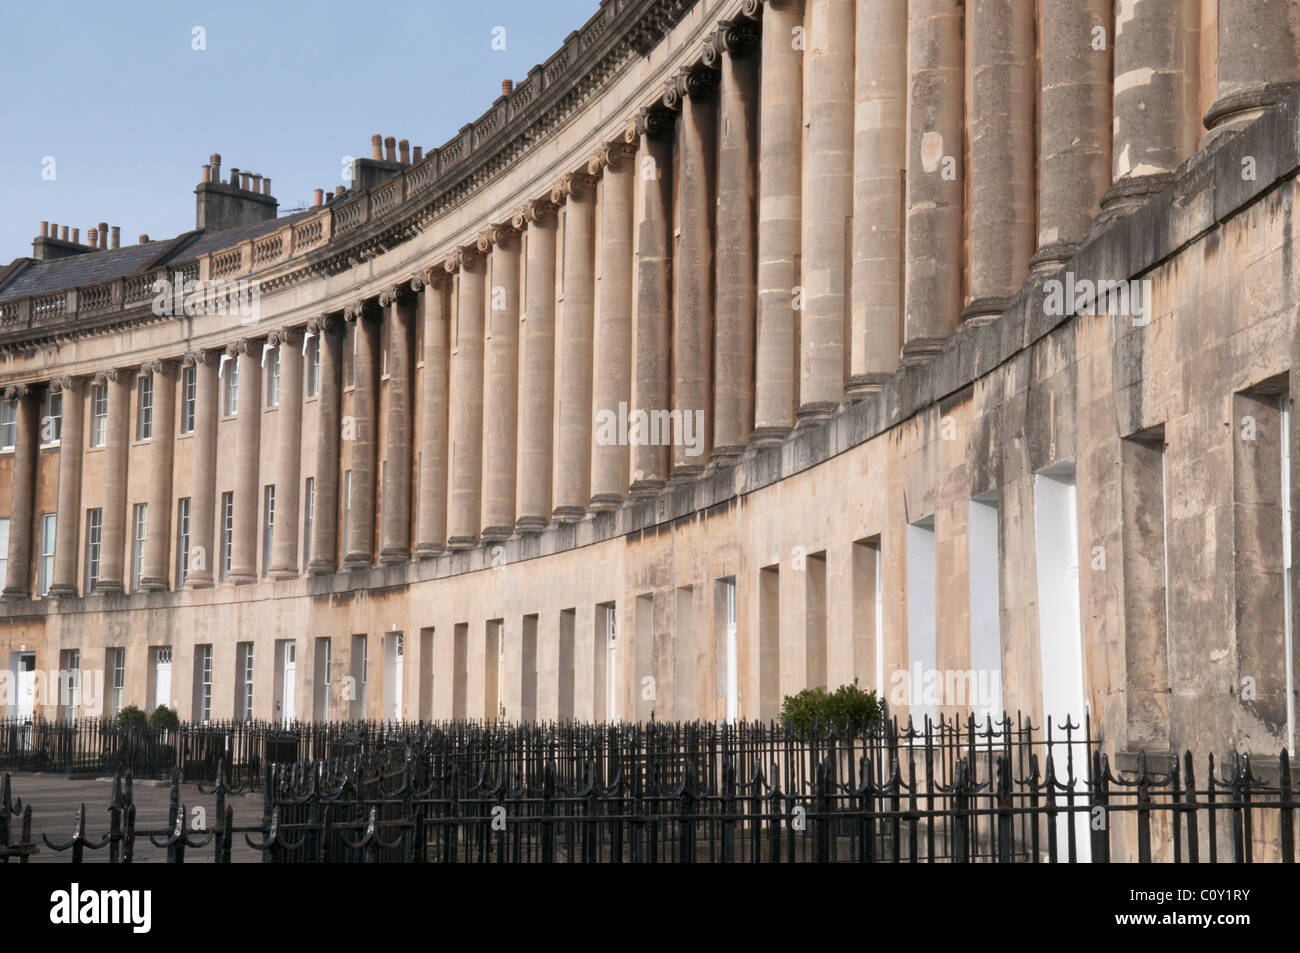 Bath, Somerset, UK. The Royal Crescent. Georgian architecture. Designed by John Wood the Younger. Built between - Stock Image